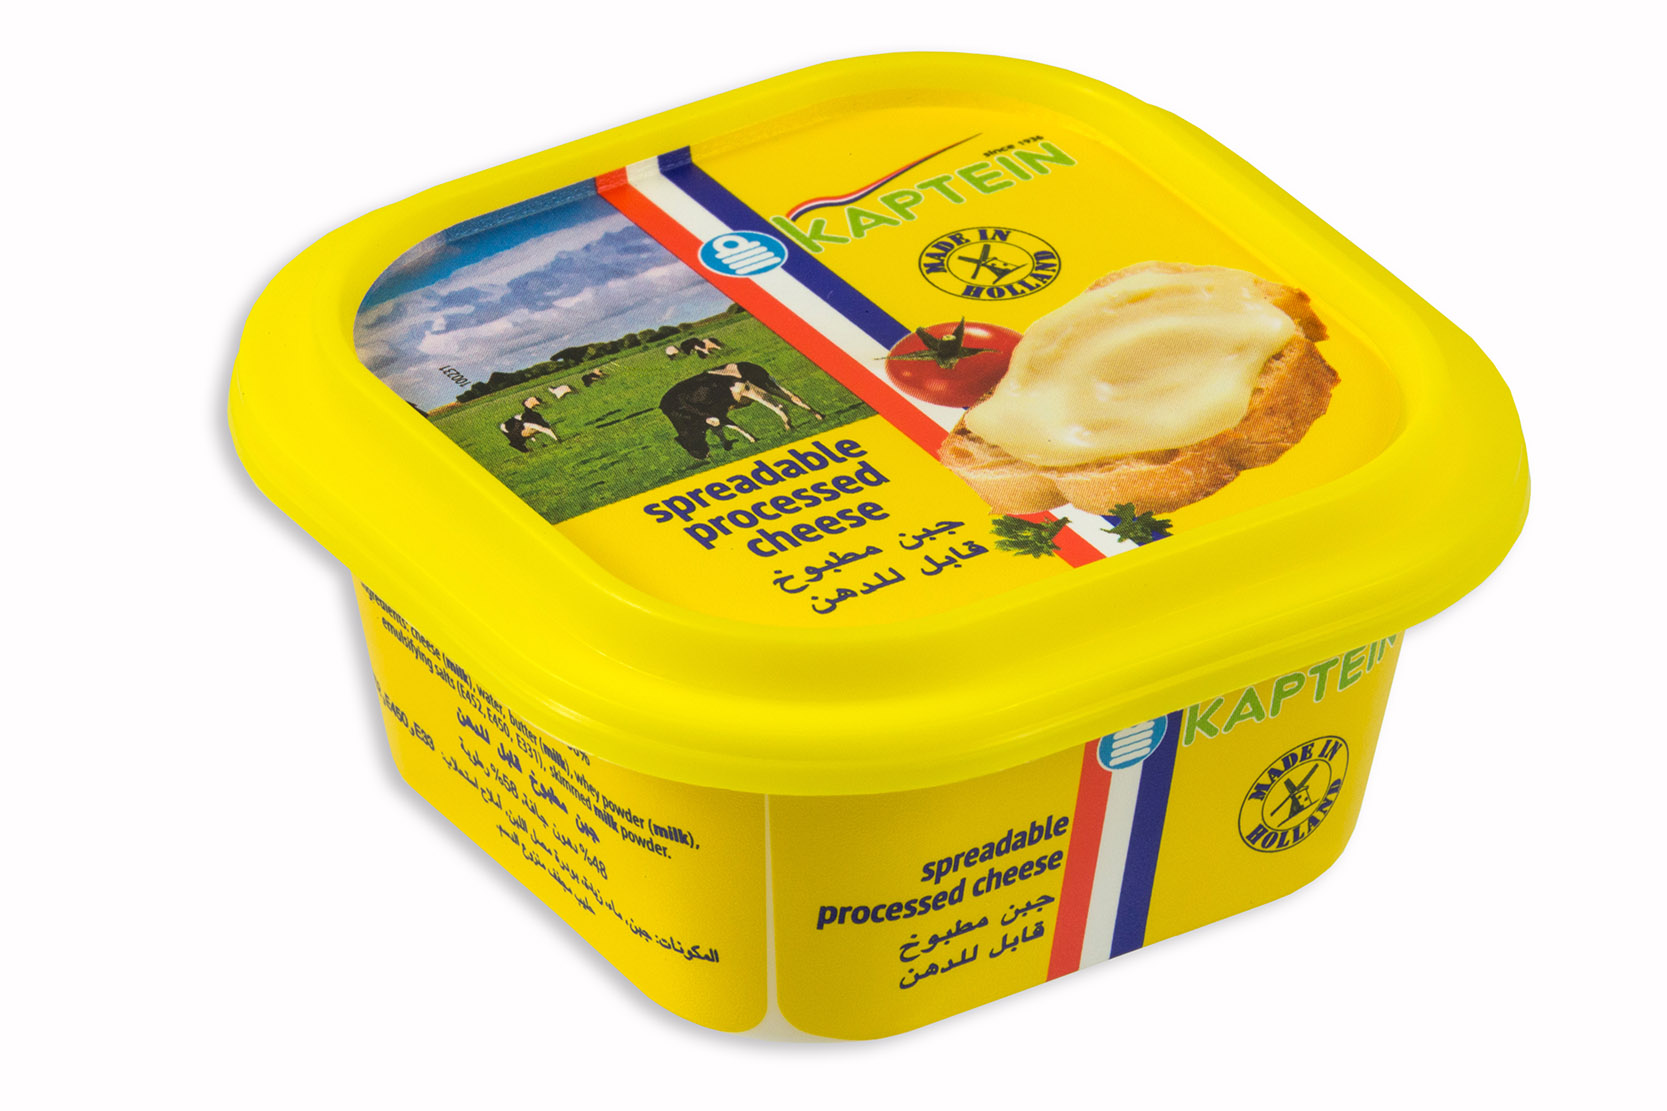 Processed spreadable cheese